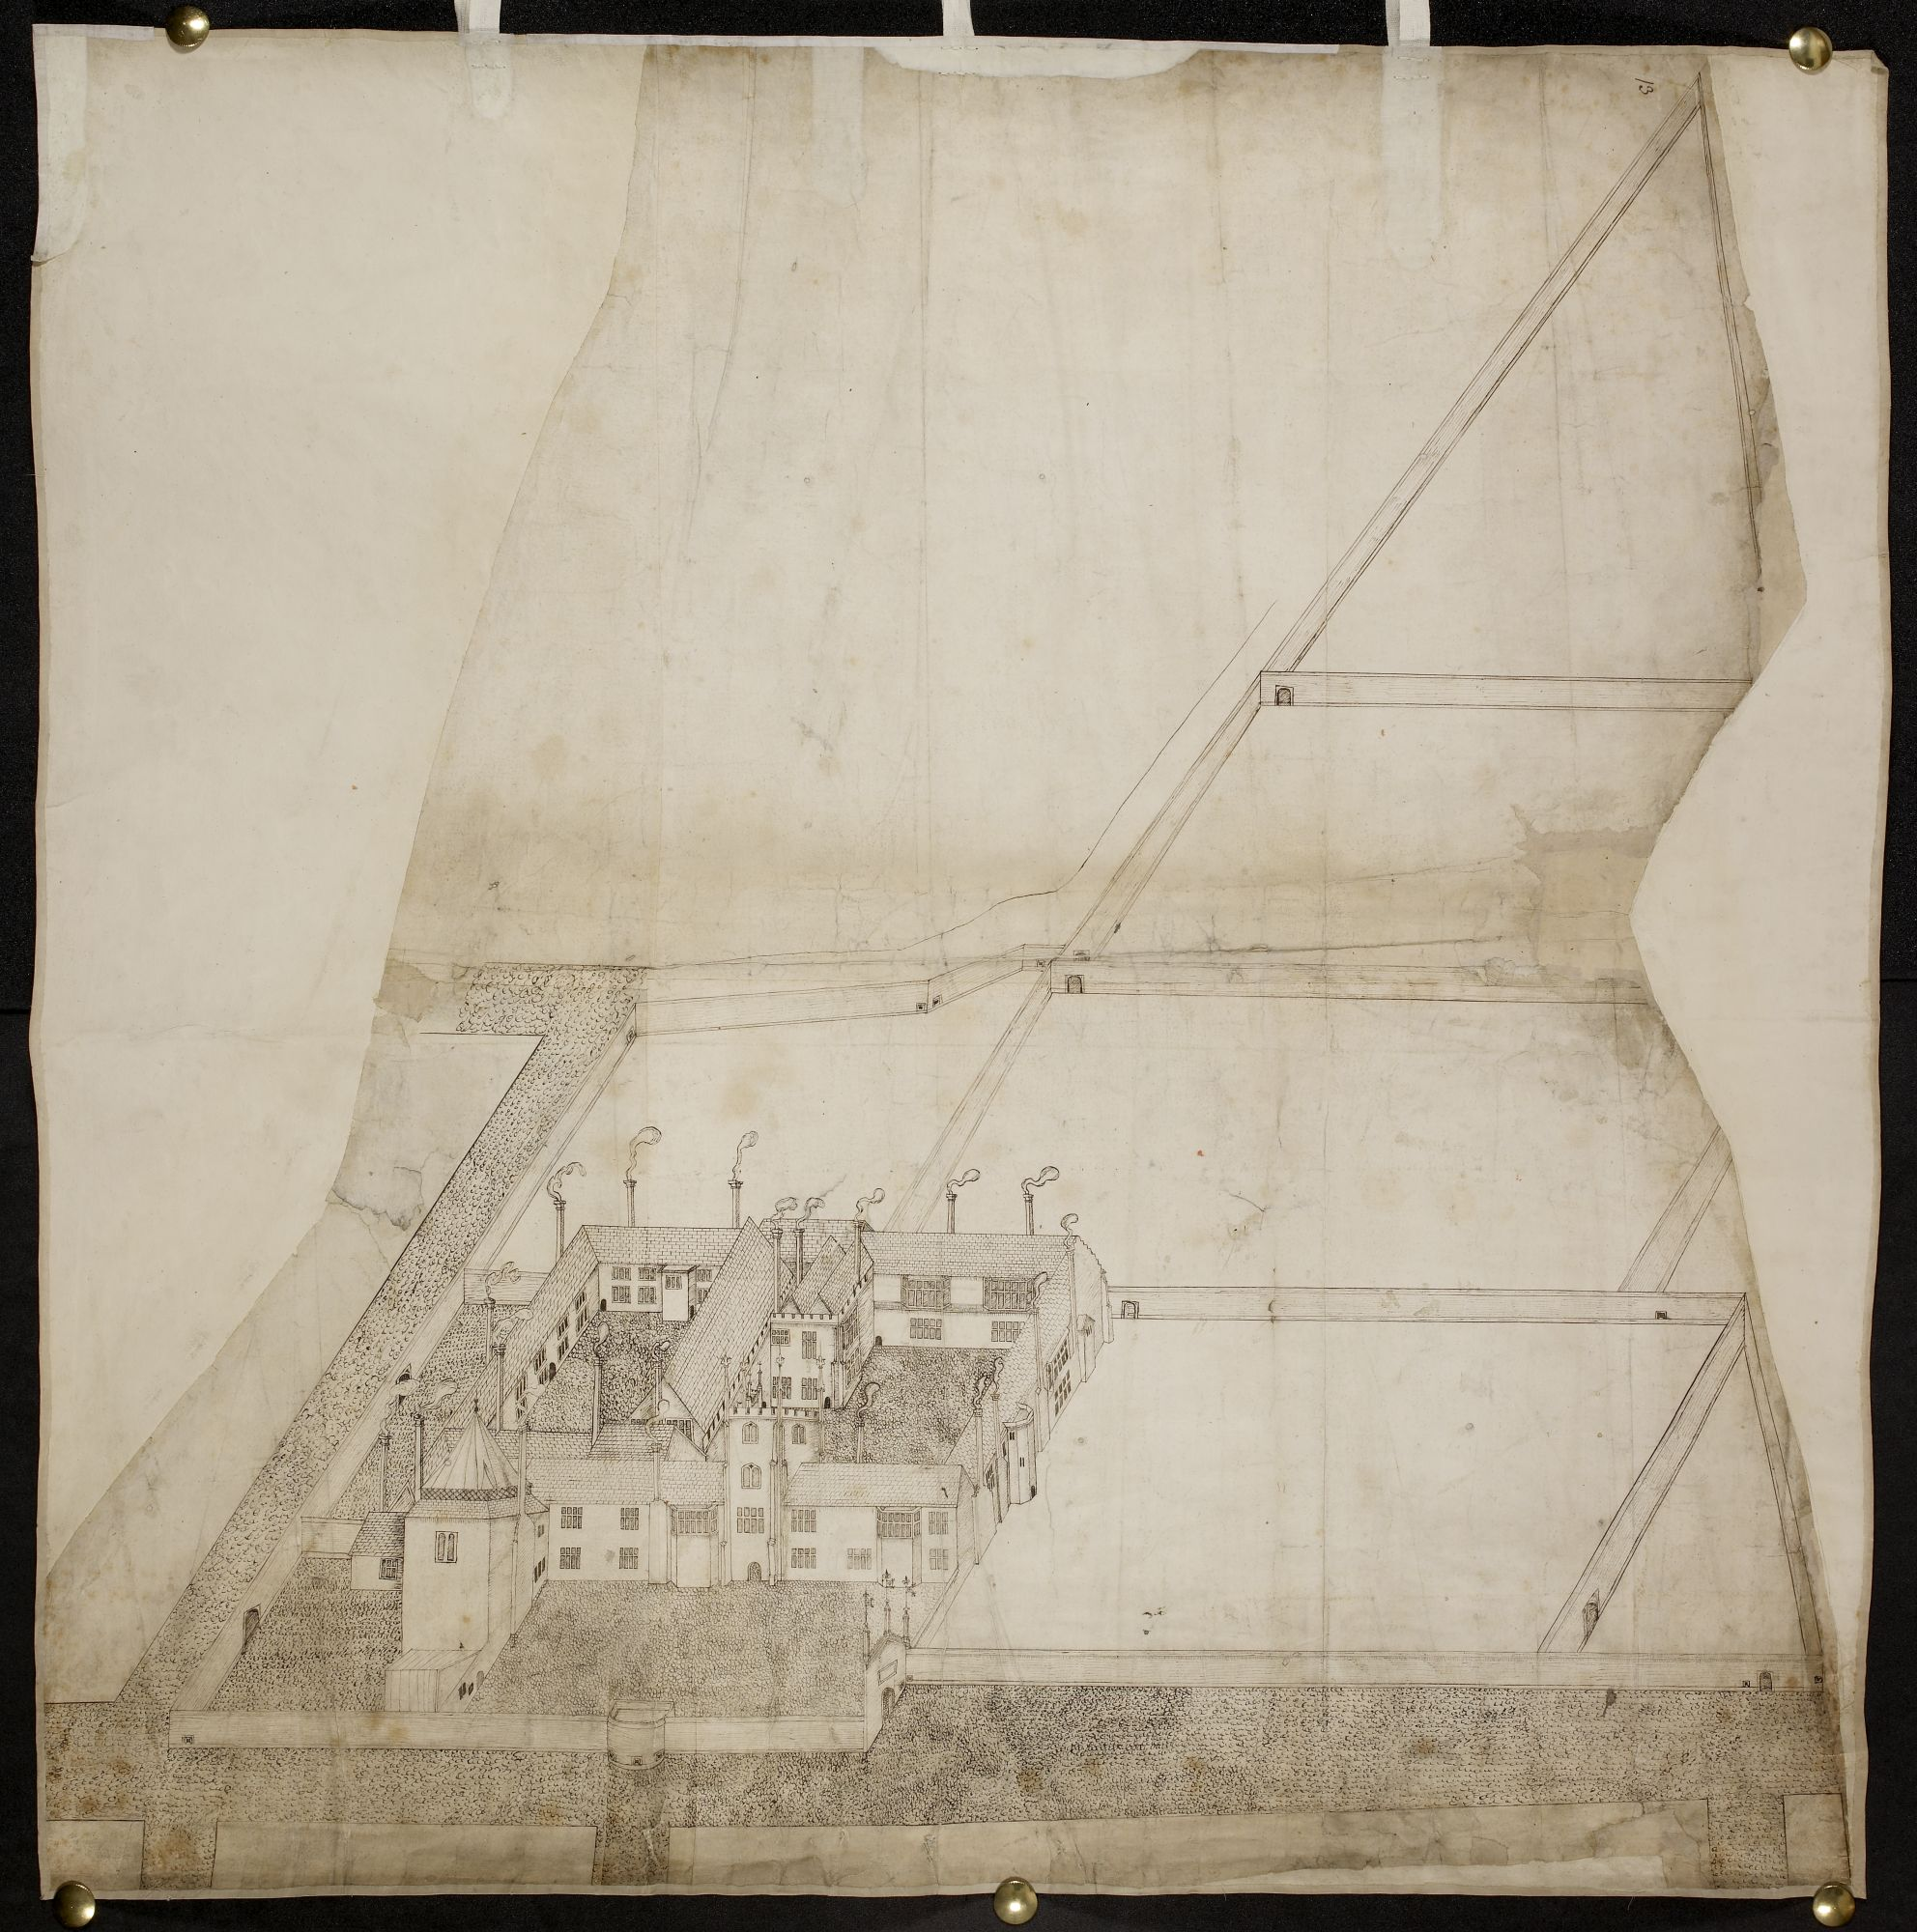 A bird's-eye perspective of Hull Manor House by John Rogers.